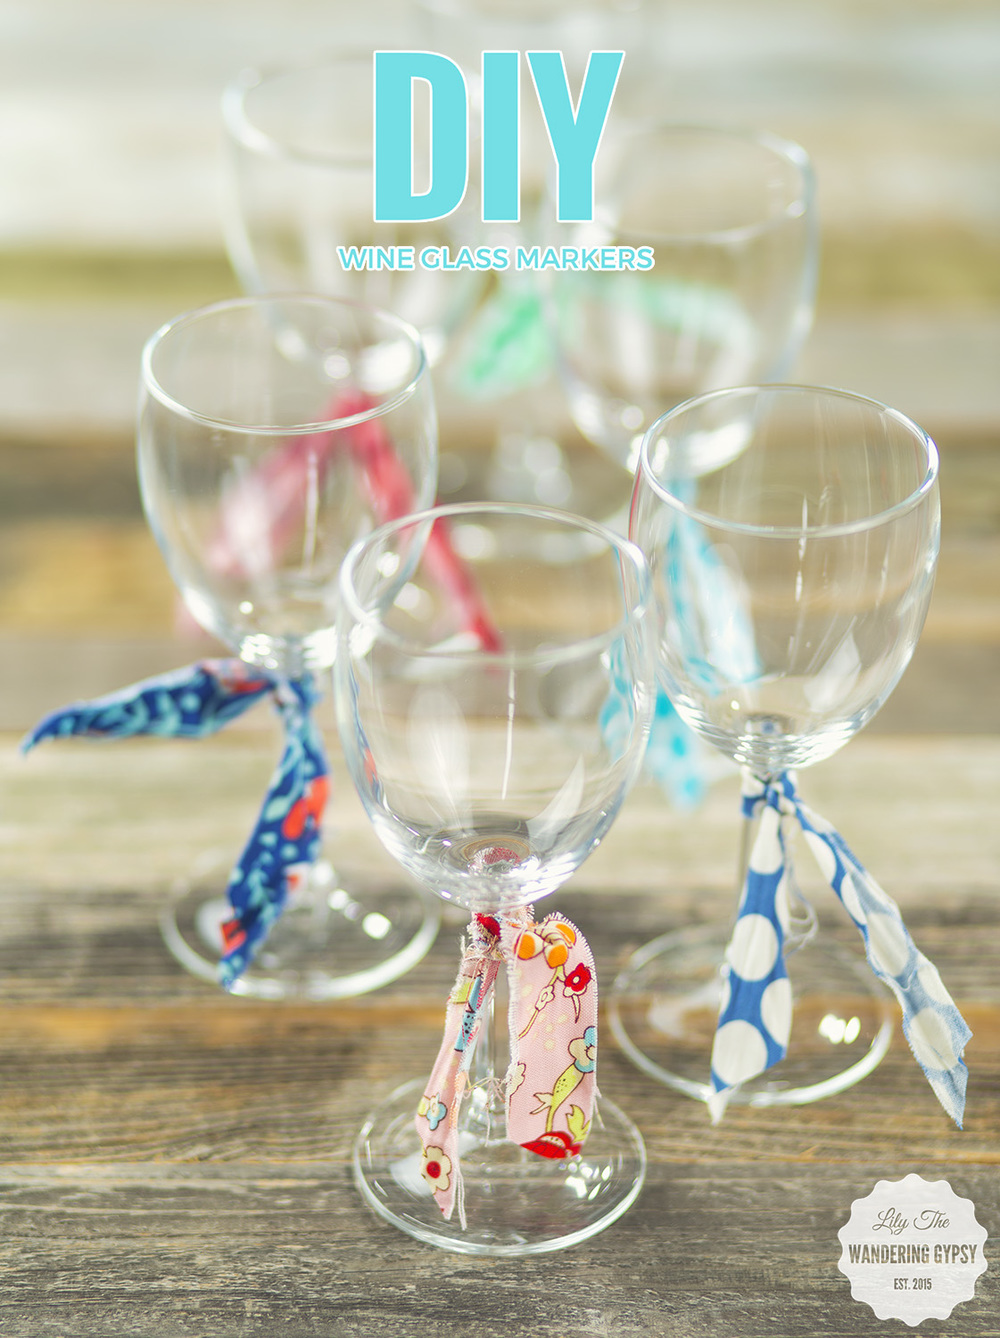 DIY Fabric Wine Glass Markers #BlackBoxSummer #CollectiveBias (Msg4 21+)